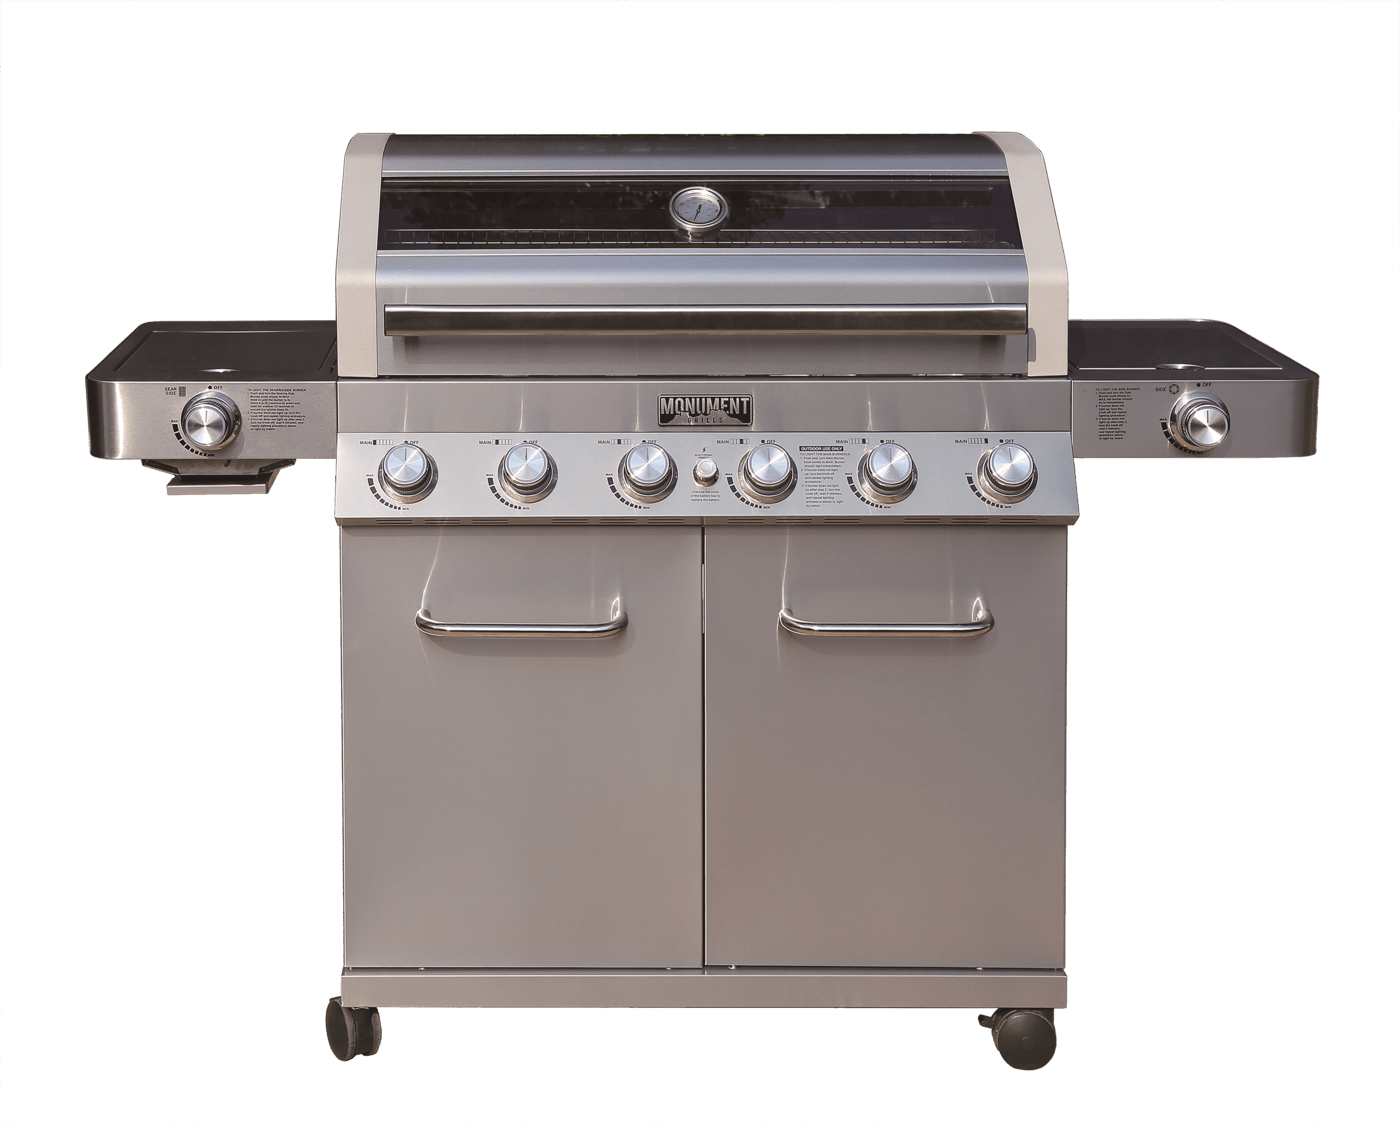 Outdoor Grill Monument Clearview 6 Burner